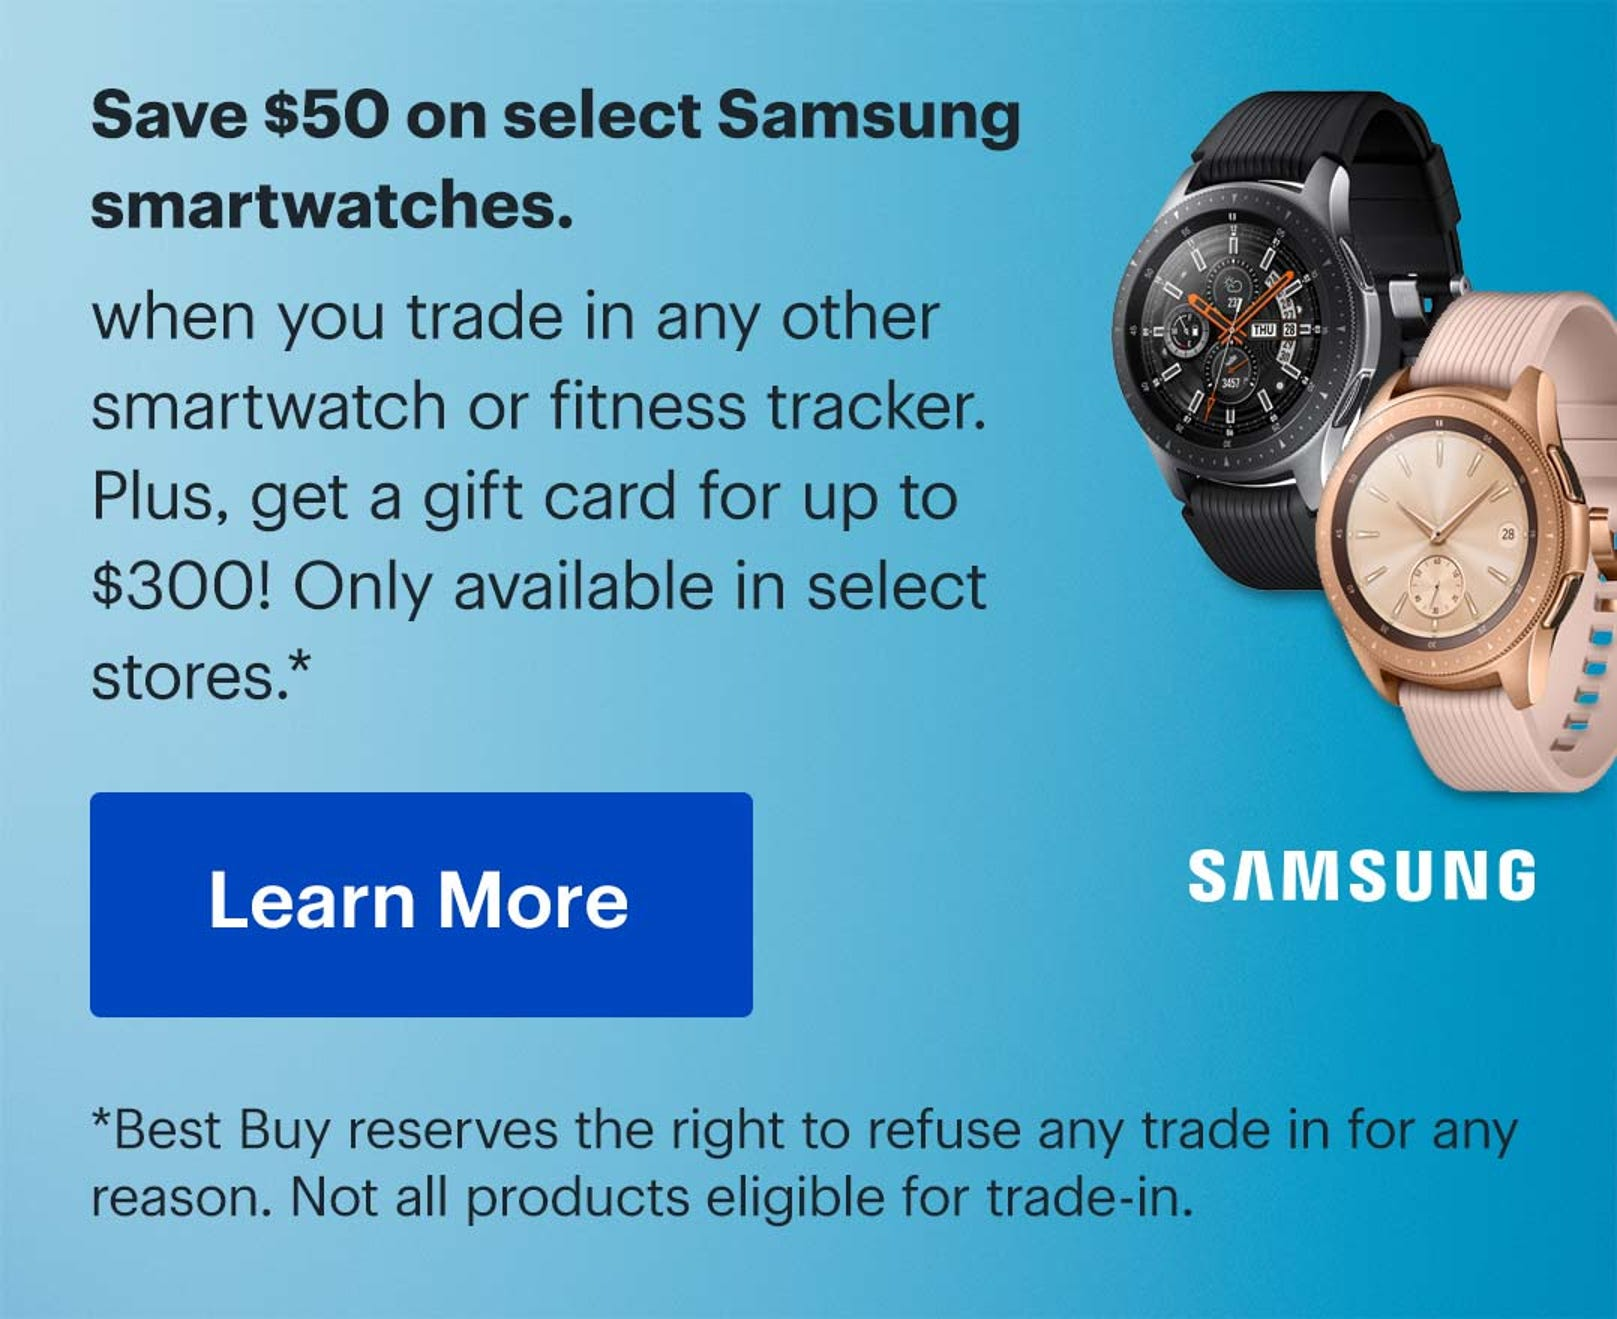 Samsung Galaxy Watch 46mm Smartwatch with Heart Rate Monitor